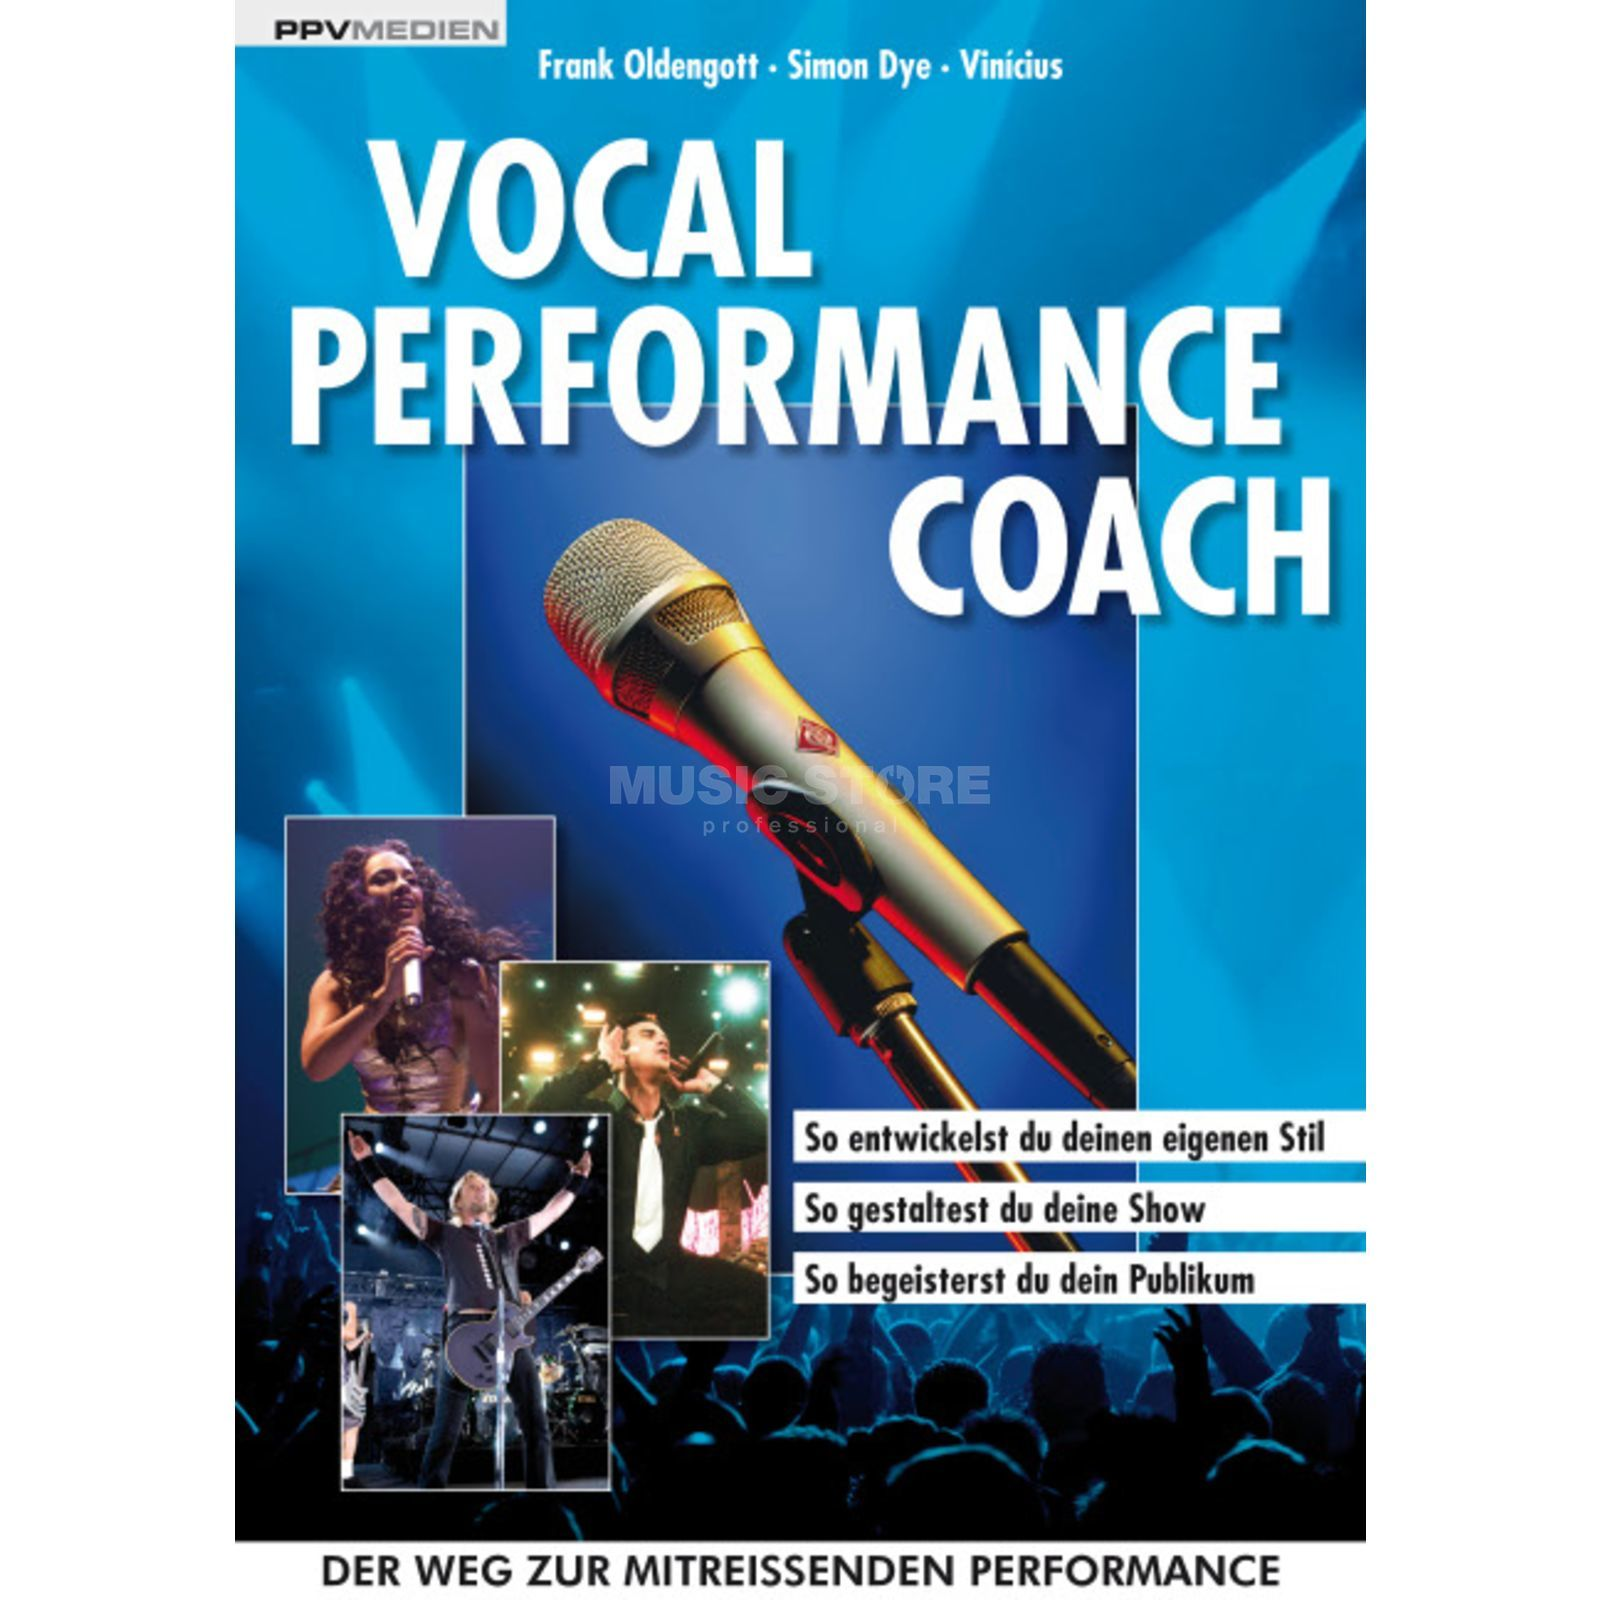 PPV Medien Vocal Performance Coach Oldengott, Dye, Vinicius Produktbild